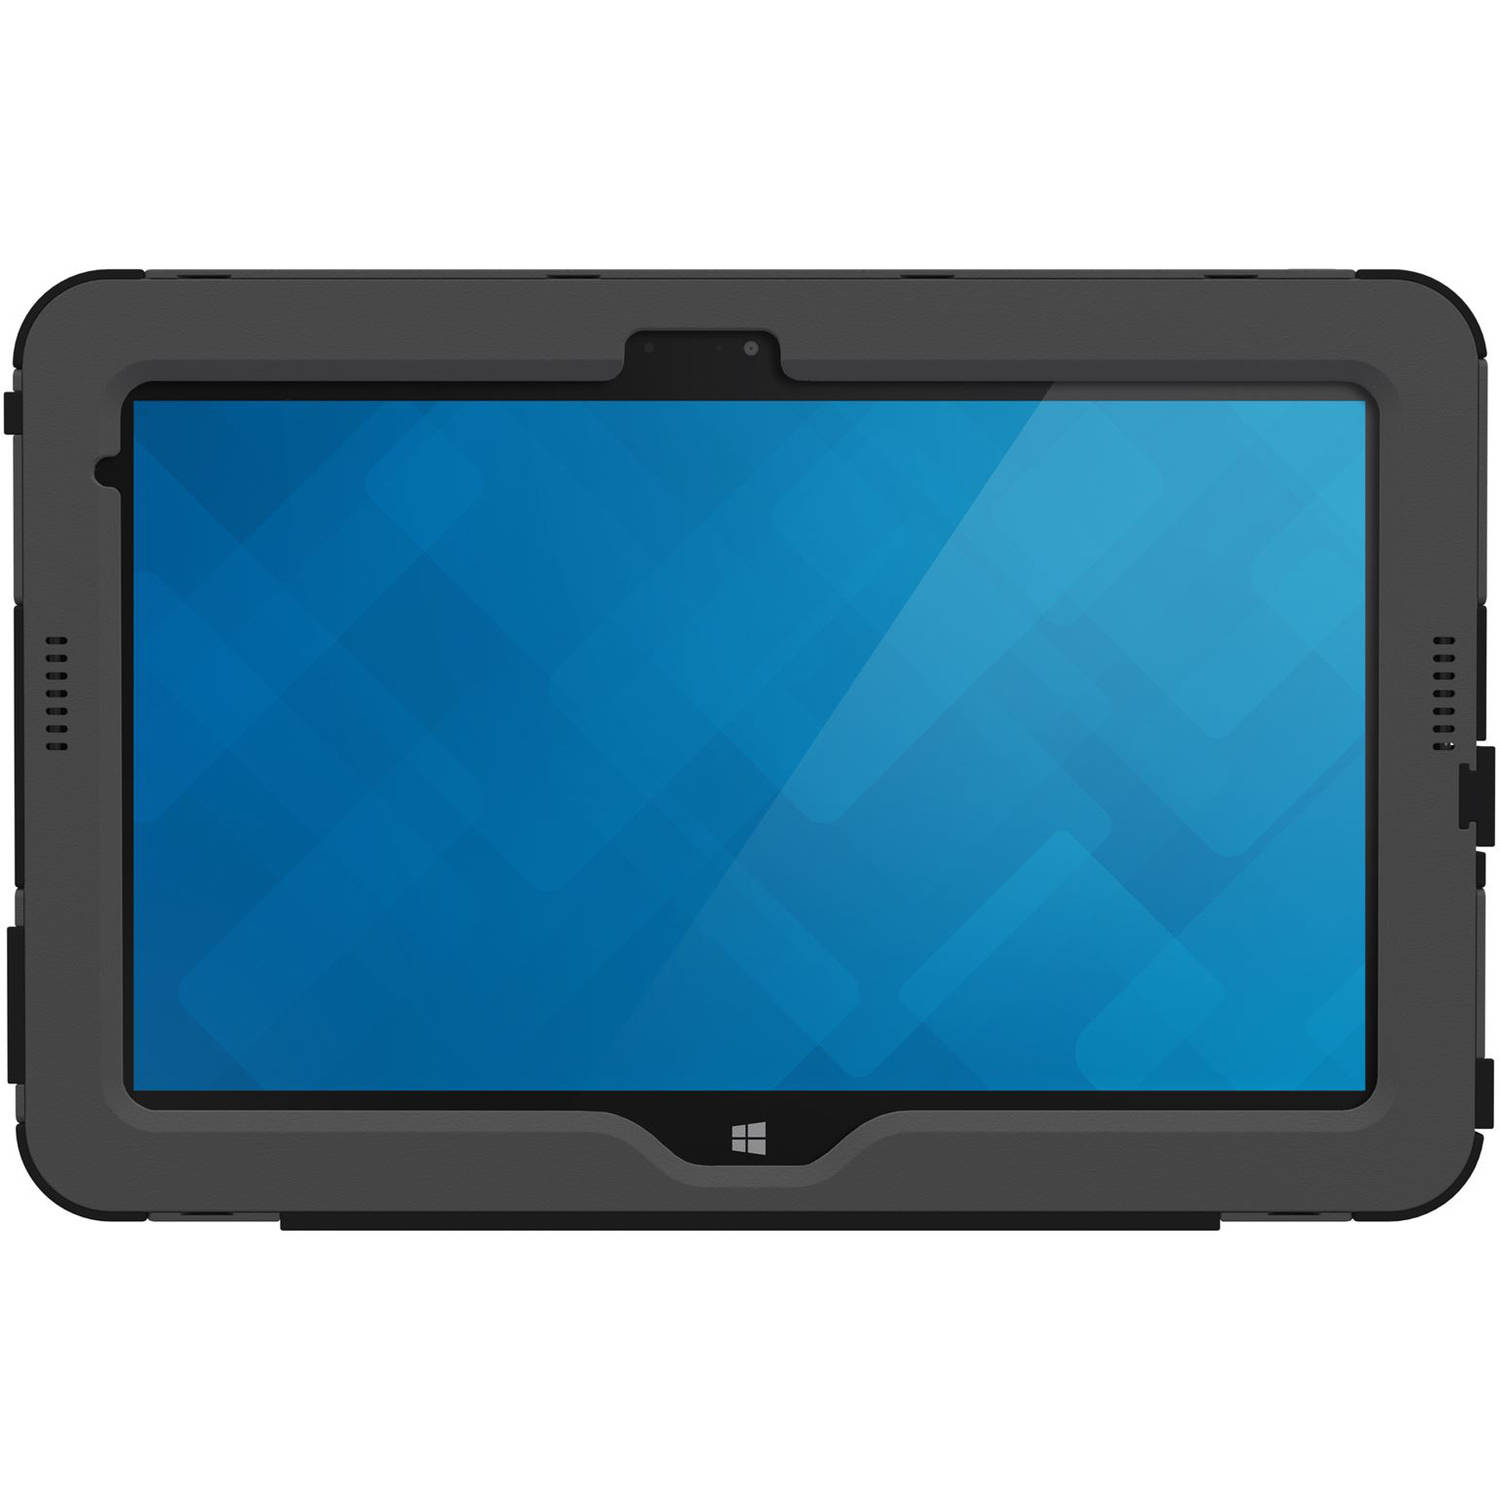 Targus SafePort Rugged Max Pro Case for the Dell Venue 11 Pro by Targus